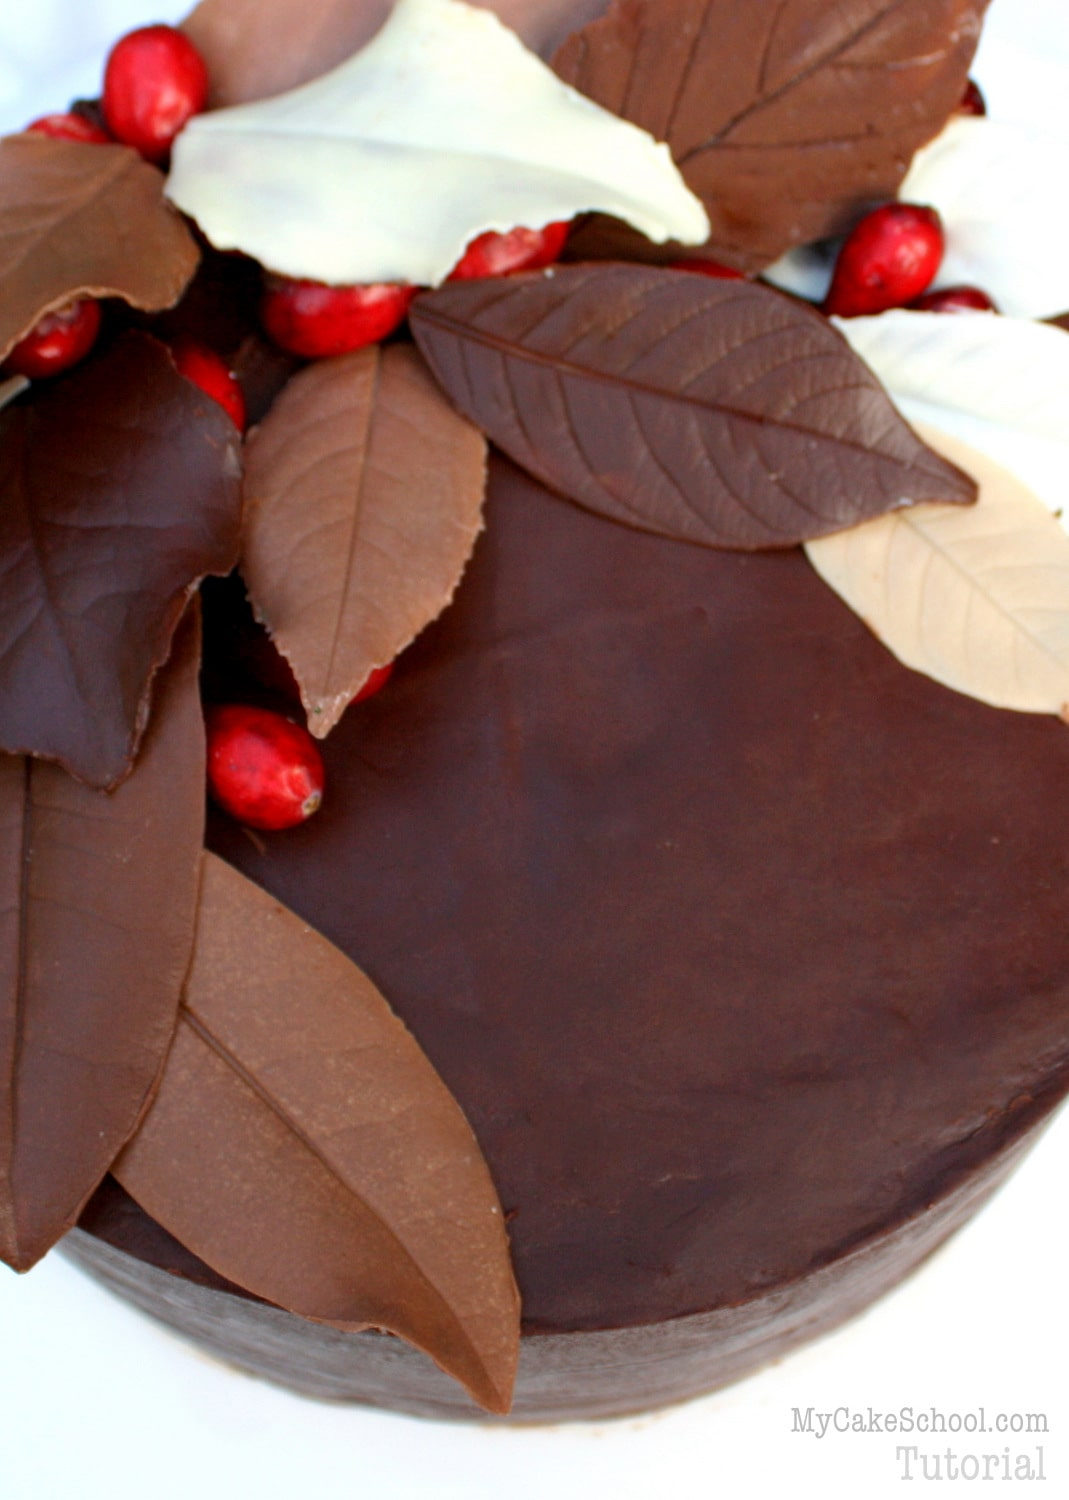 Cake Decorating Chocolate Leaves : How to Make Chocolate Leaves- Free Autumn Cake Tutorial ...